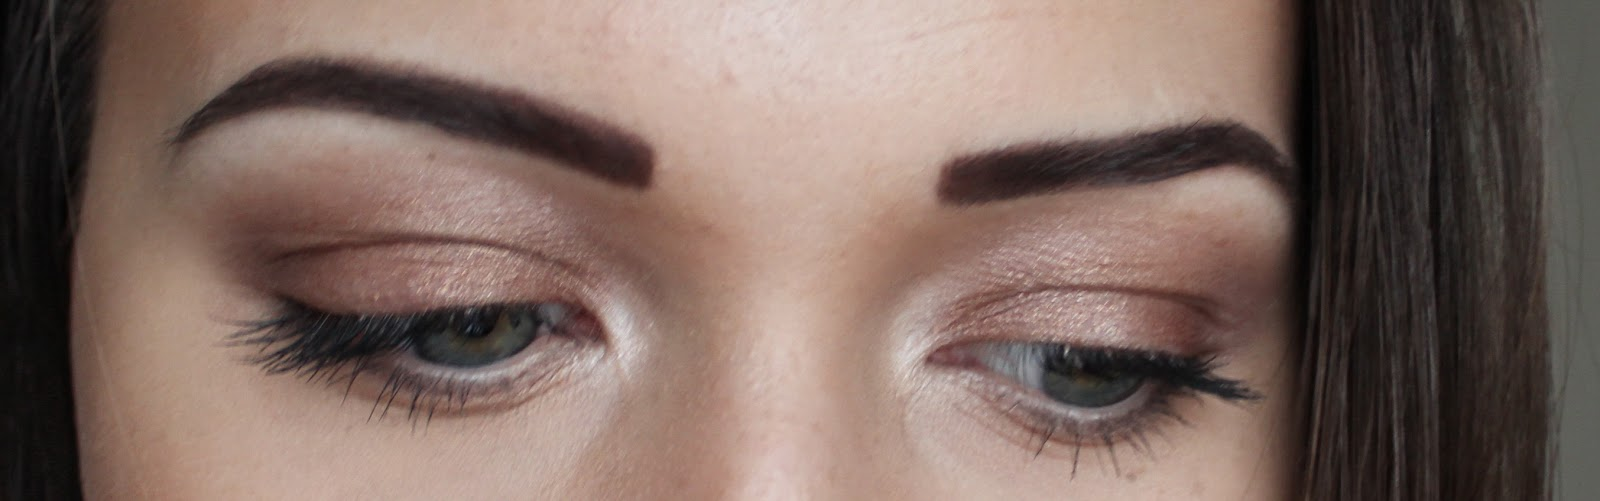 Apply Nyx Eyeshadow Base All Over Your Eyelids And In The Inner Corners Of  The Eyes Blend It Out Using Your Ring Finger;